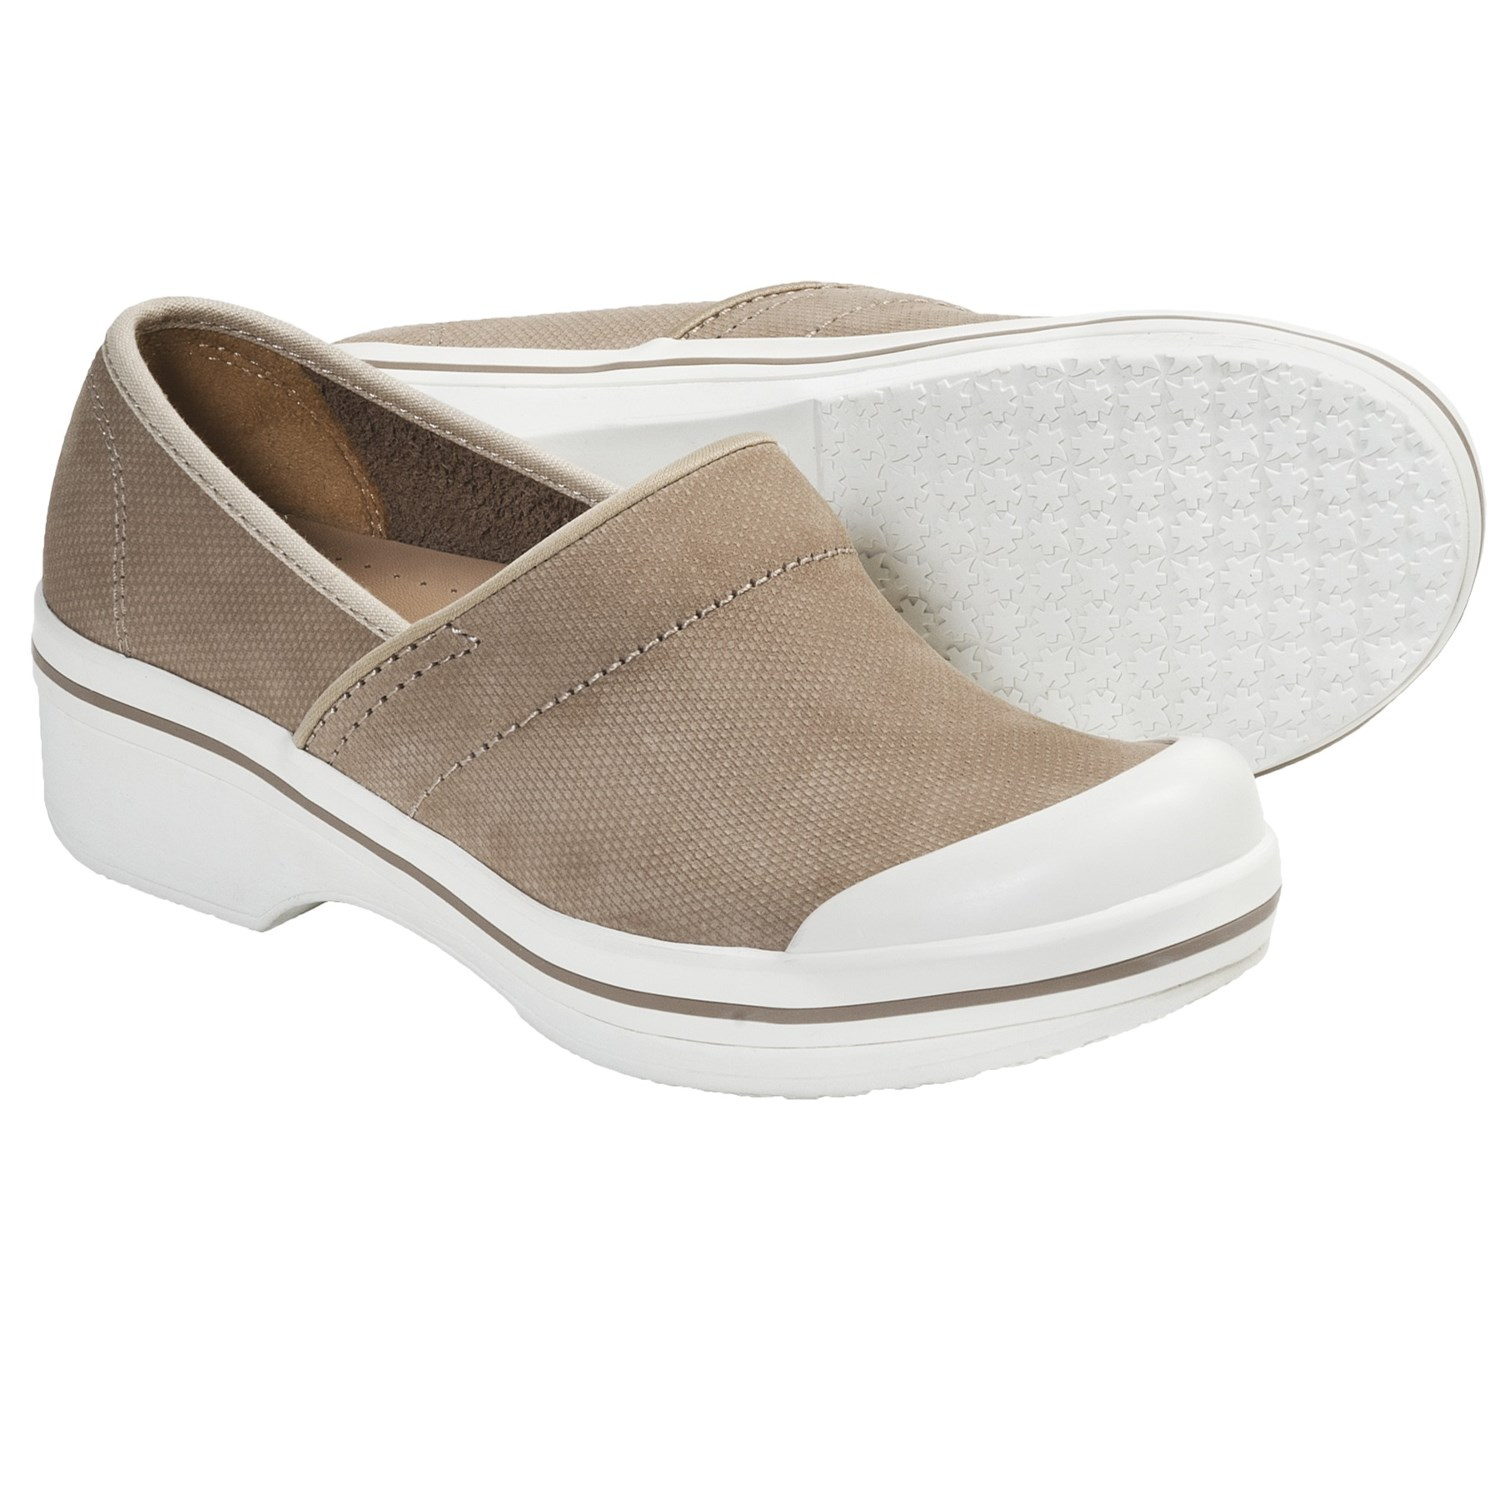 Dansko Volley Shoes For Women Save 35